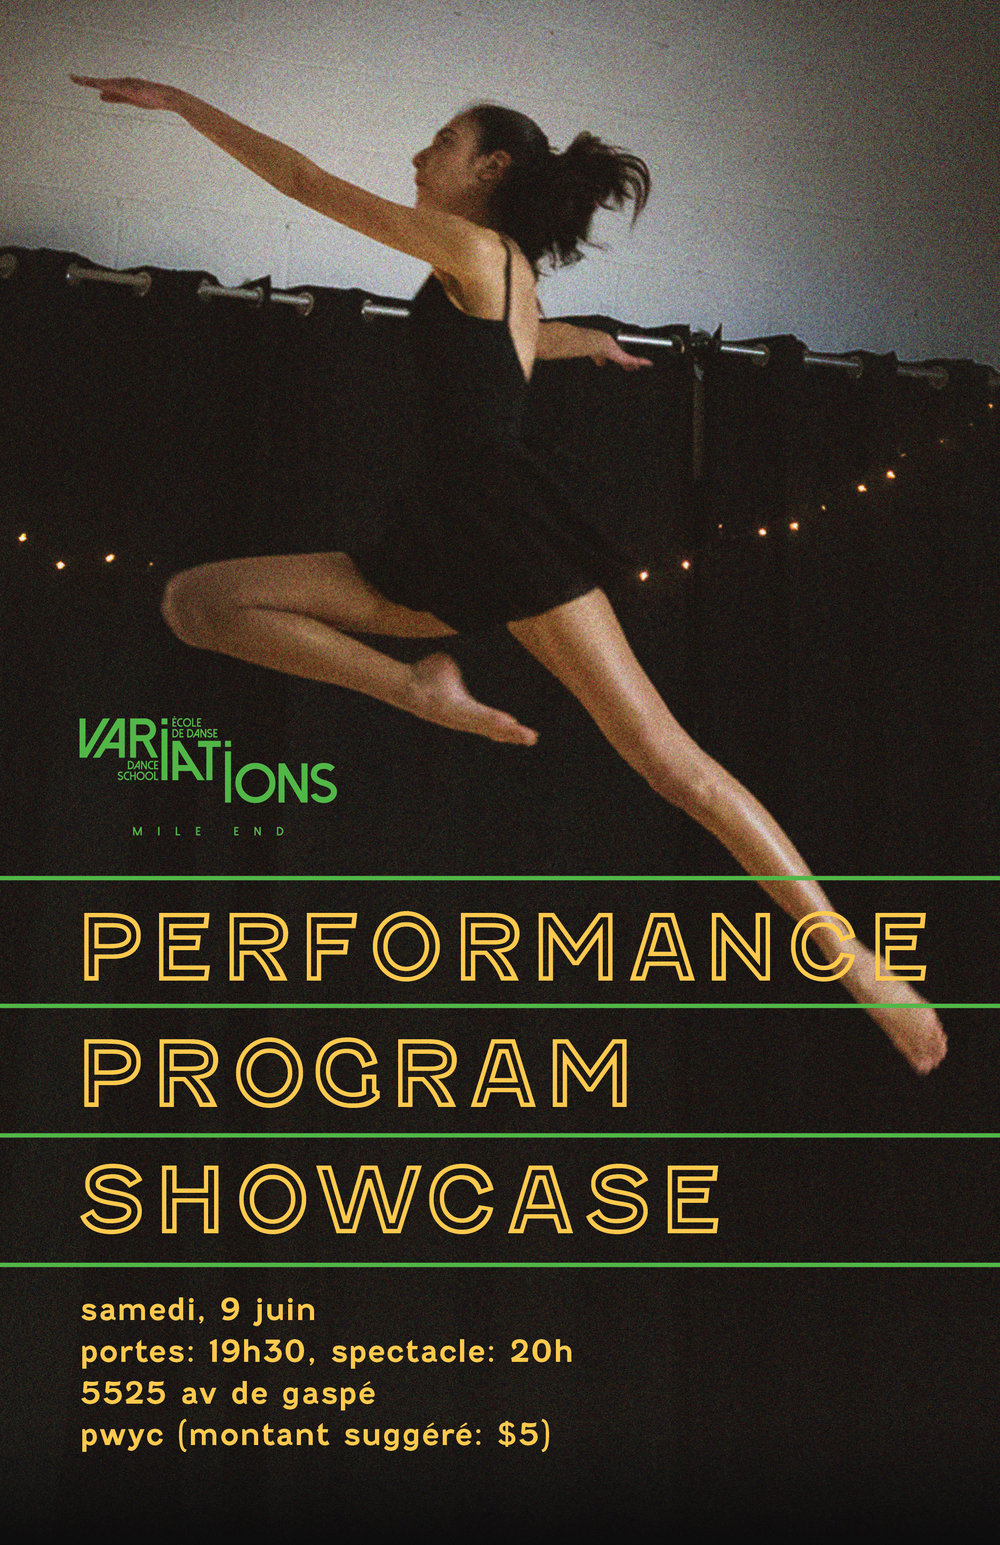 V_Showcase_Poster_052118_ART.jpg